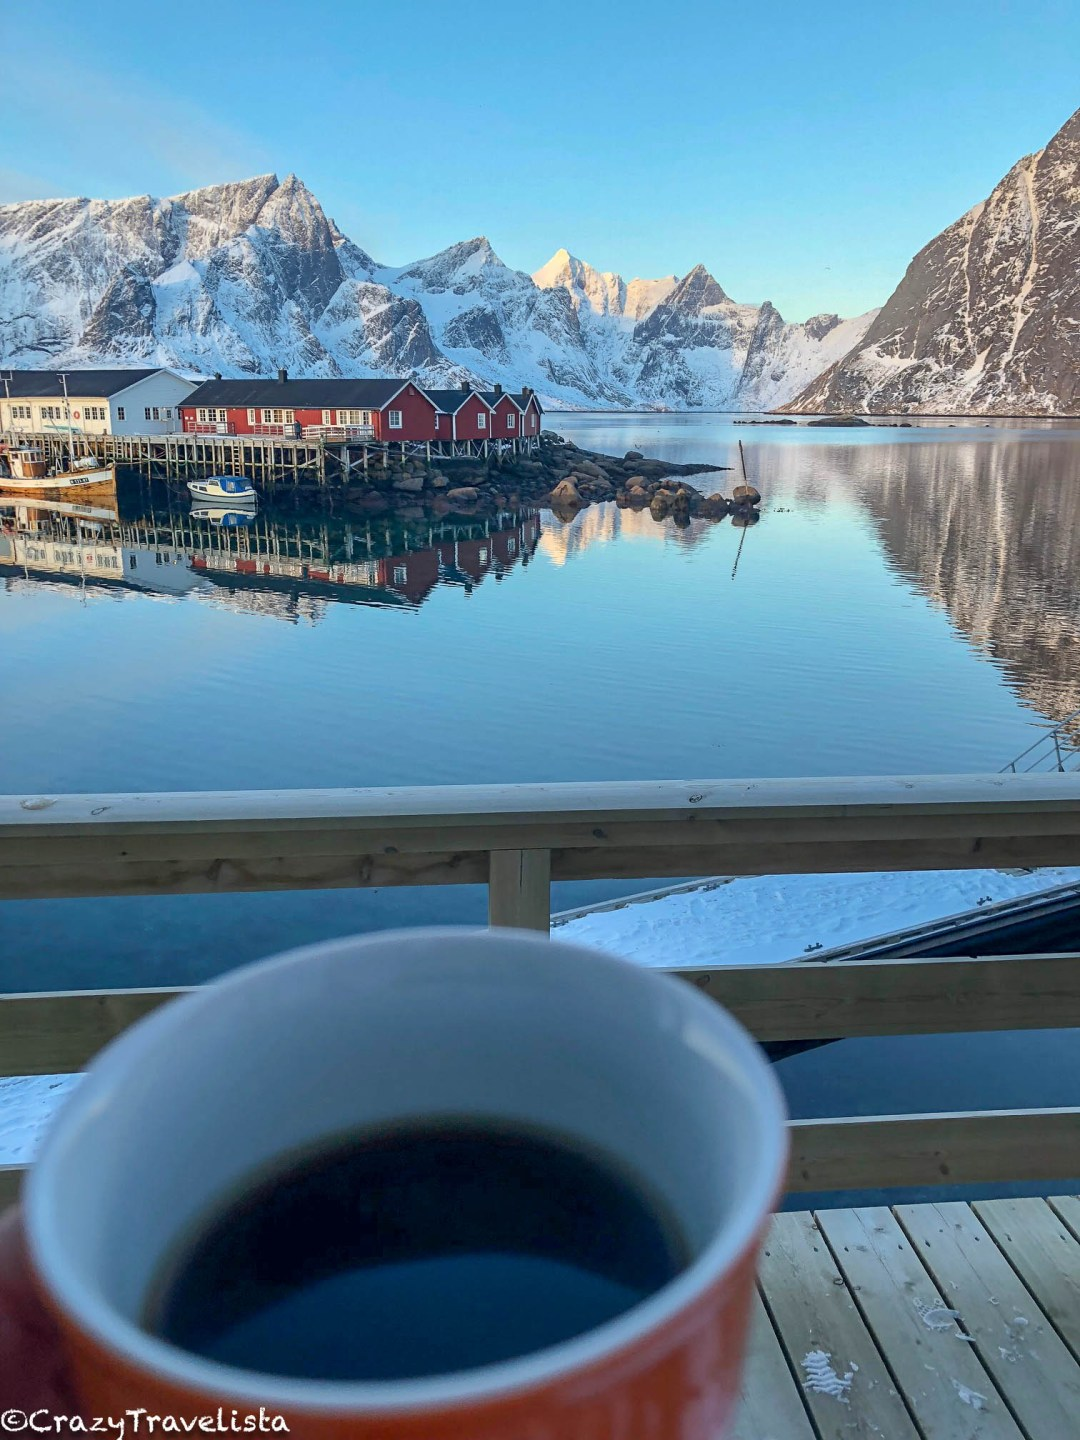 Morning coffee with a view